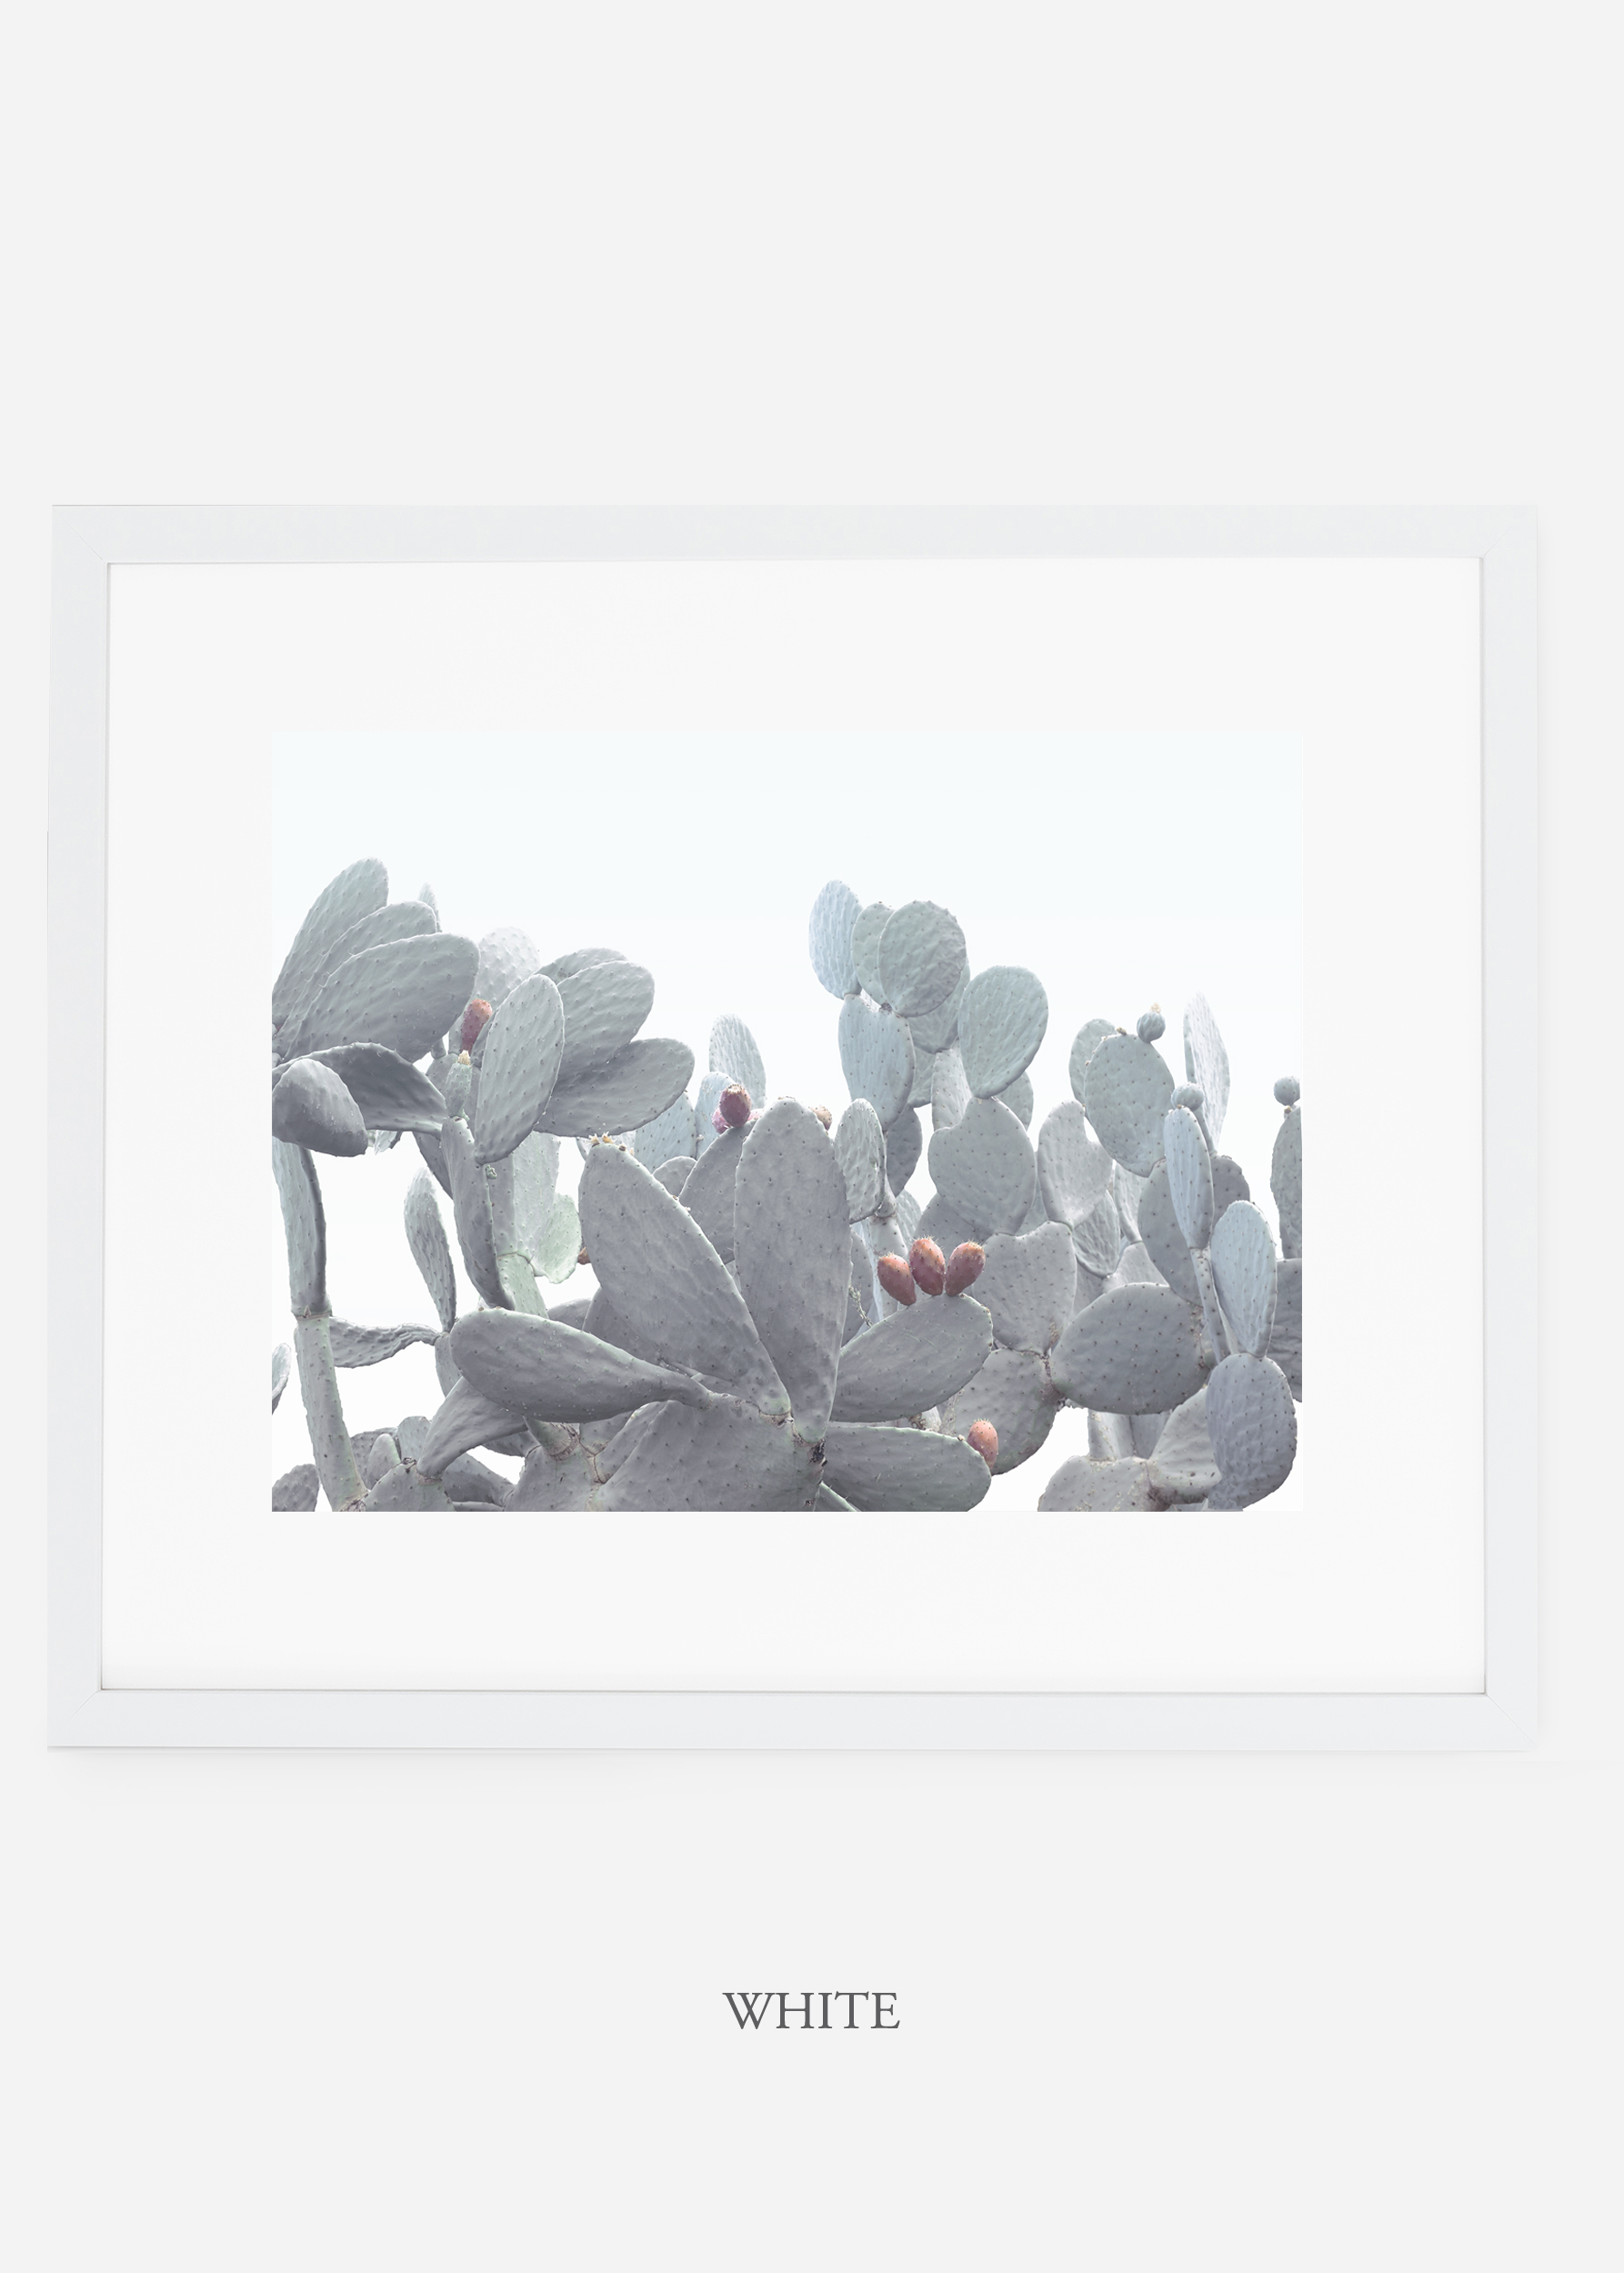 WilderCalifornia_whiteframe_WinterWhite_No4_Art_Photography_interiordesign_agave.jpg